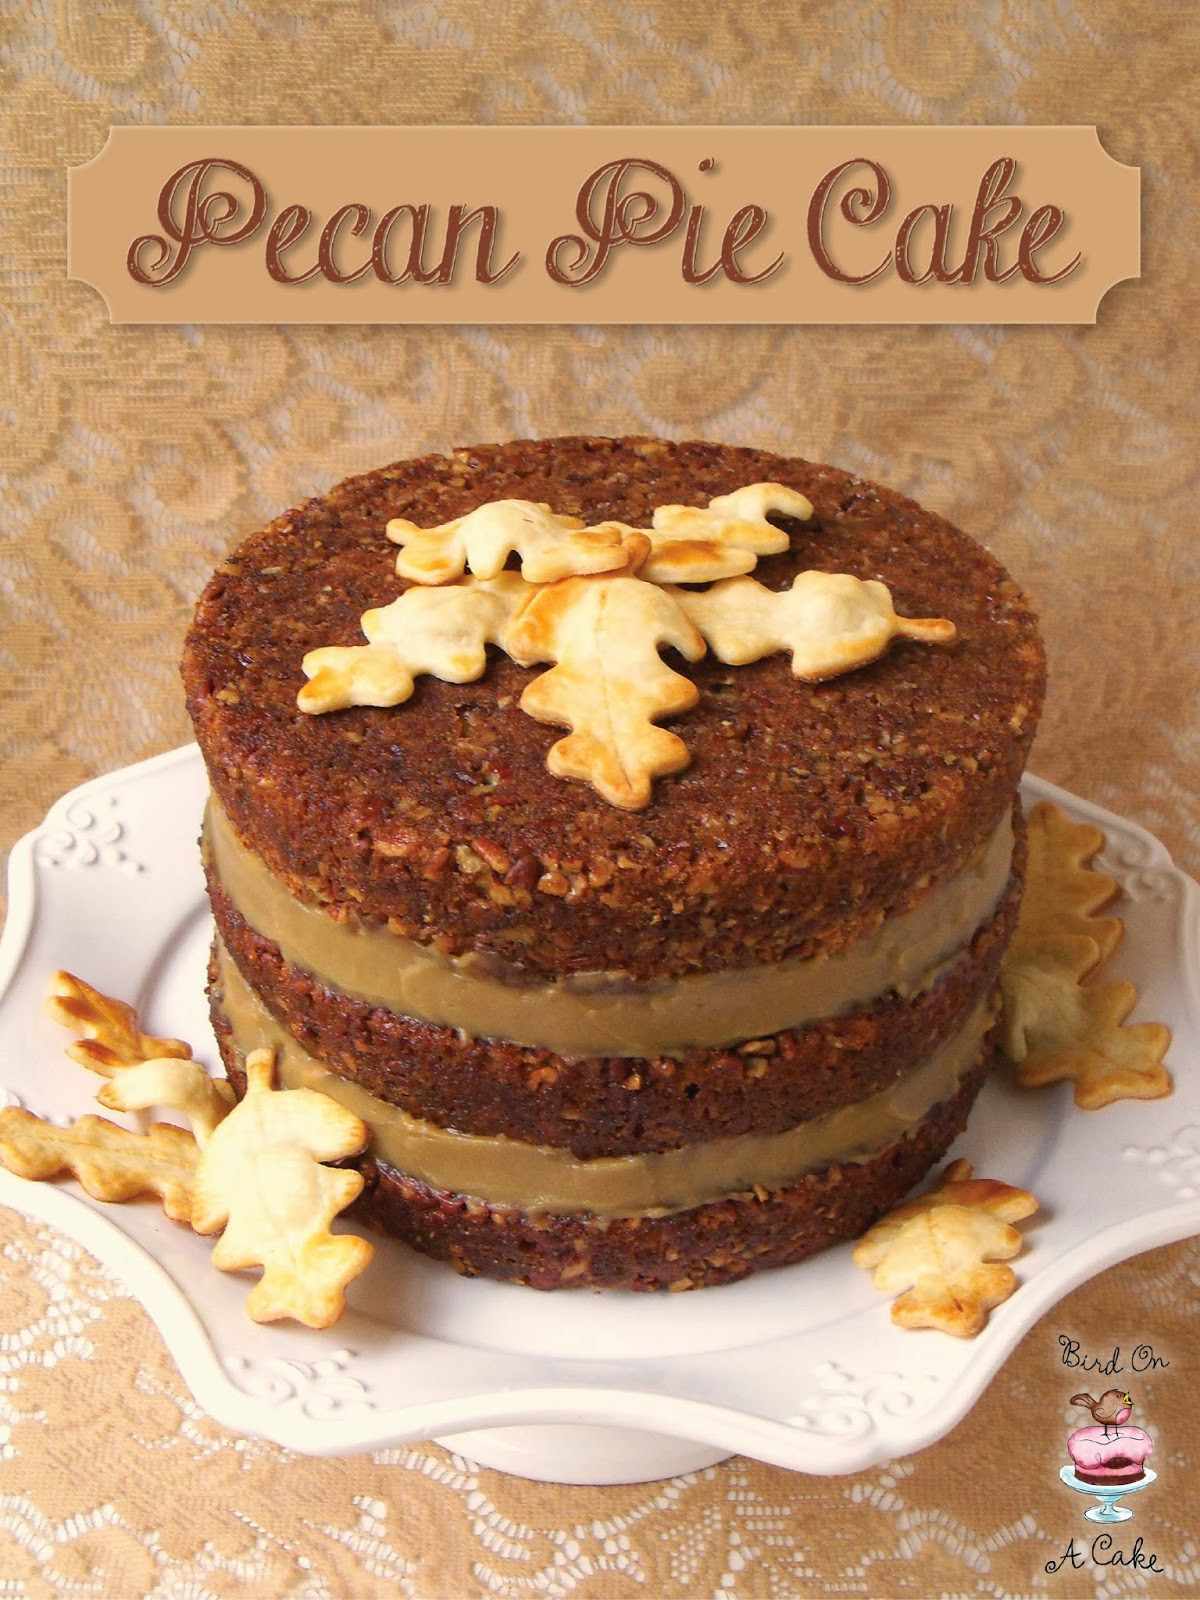 Thanksgiving Pies And Cakes  25 Thanksgiving Recipes Desserts and Treats The 36th